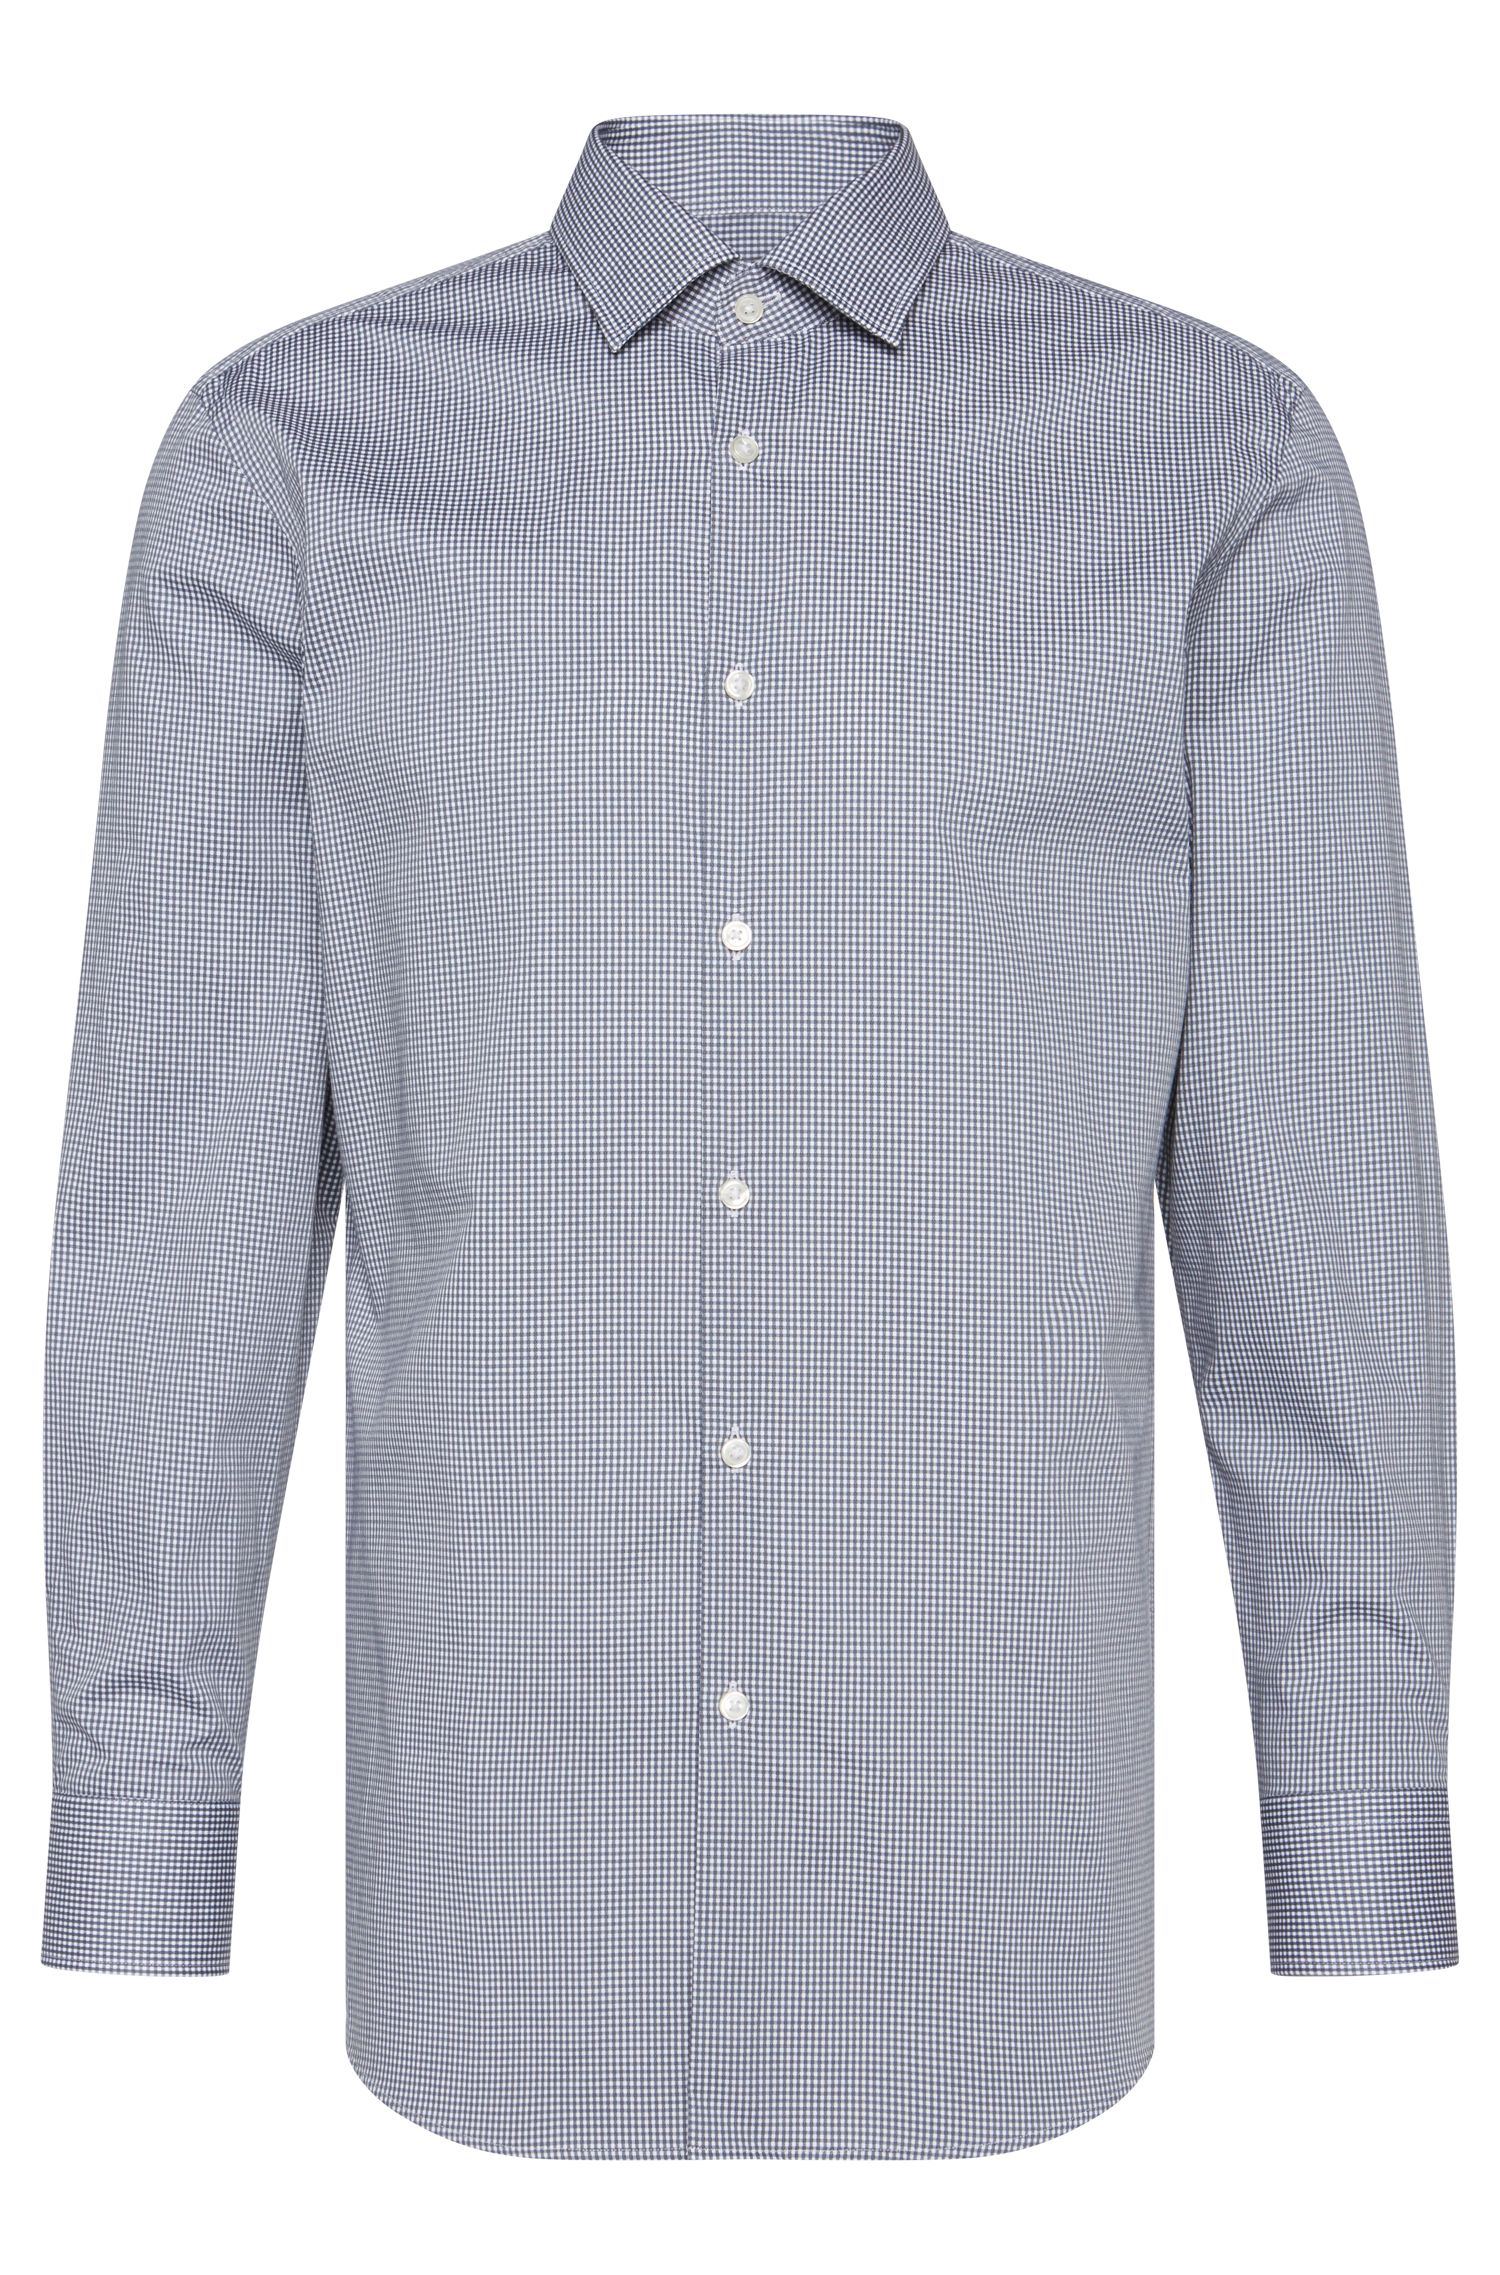 Gingham Cotton Dress Shirt, Sharp Fit | Marley US, Grey